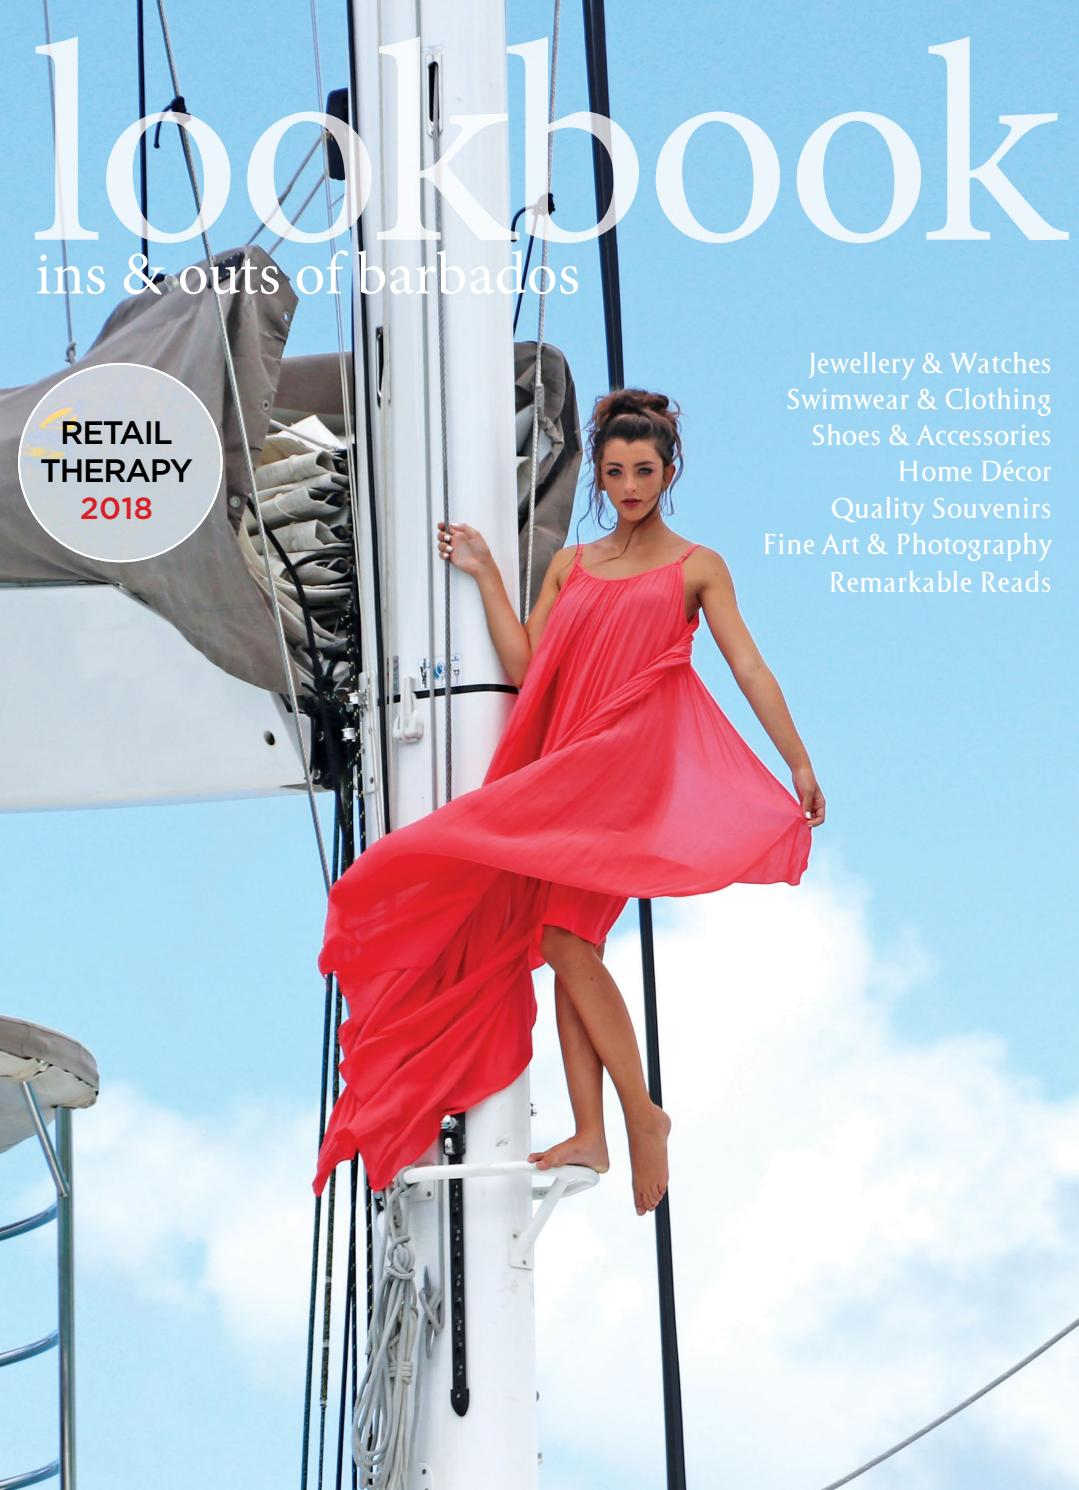 c4f6978ef Ins & Outs of Barbados 2018 LookBook by Miller Publishing Co Ltd - issuu